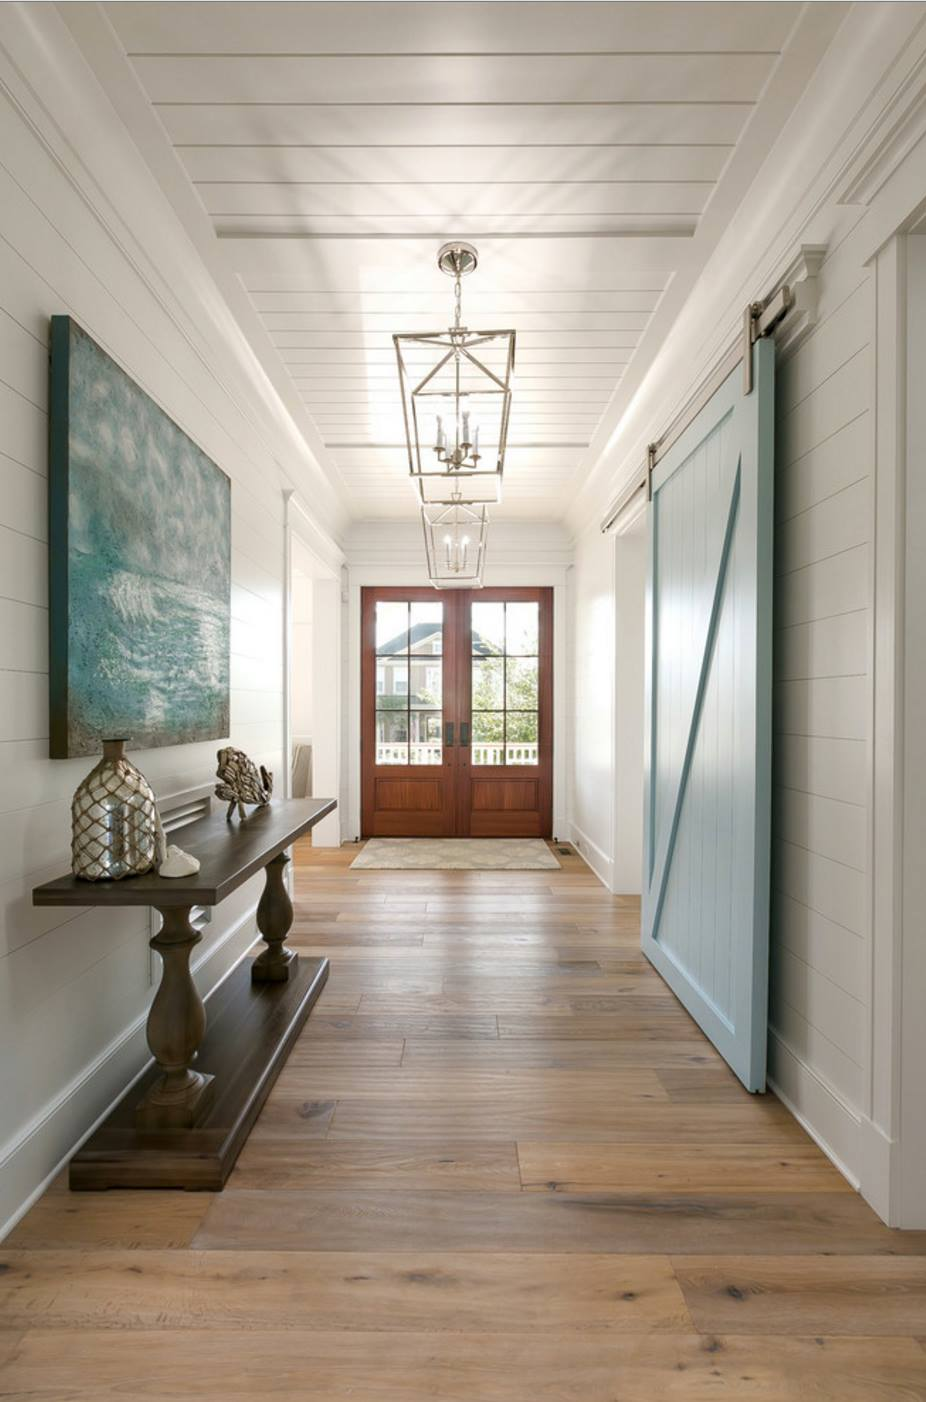 Wall color is Sherwin Williams Extra White and Barn Door Color is Yarmouth Blue Benjamin Moore. via The Guest House Studio